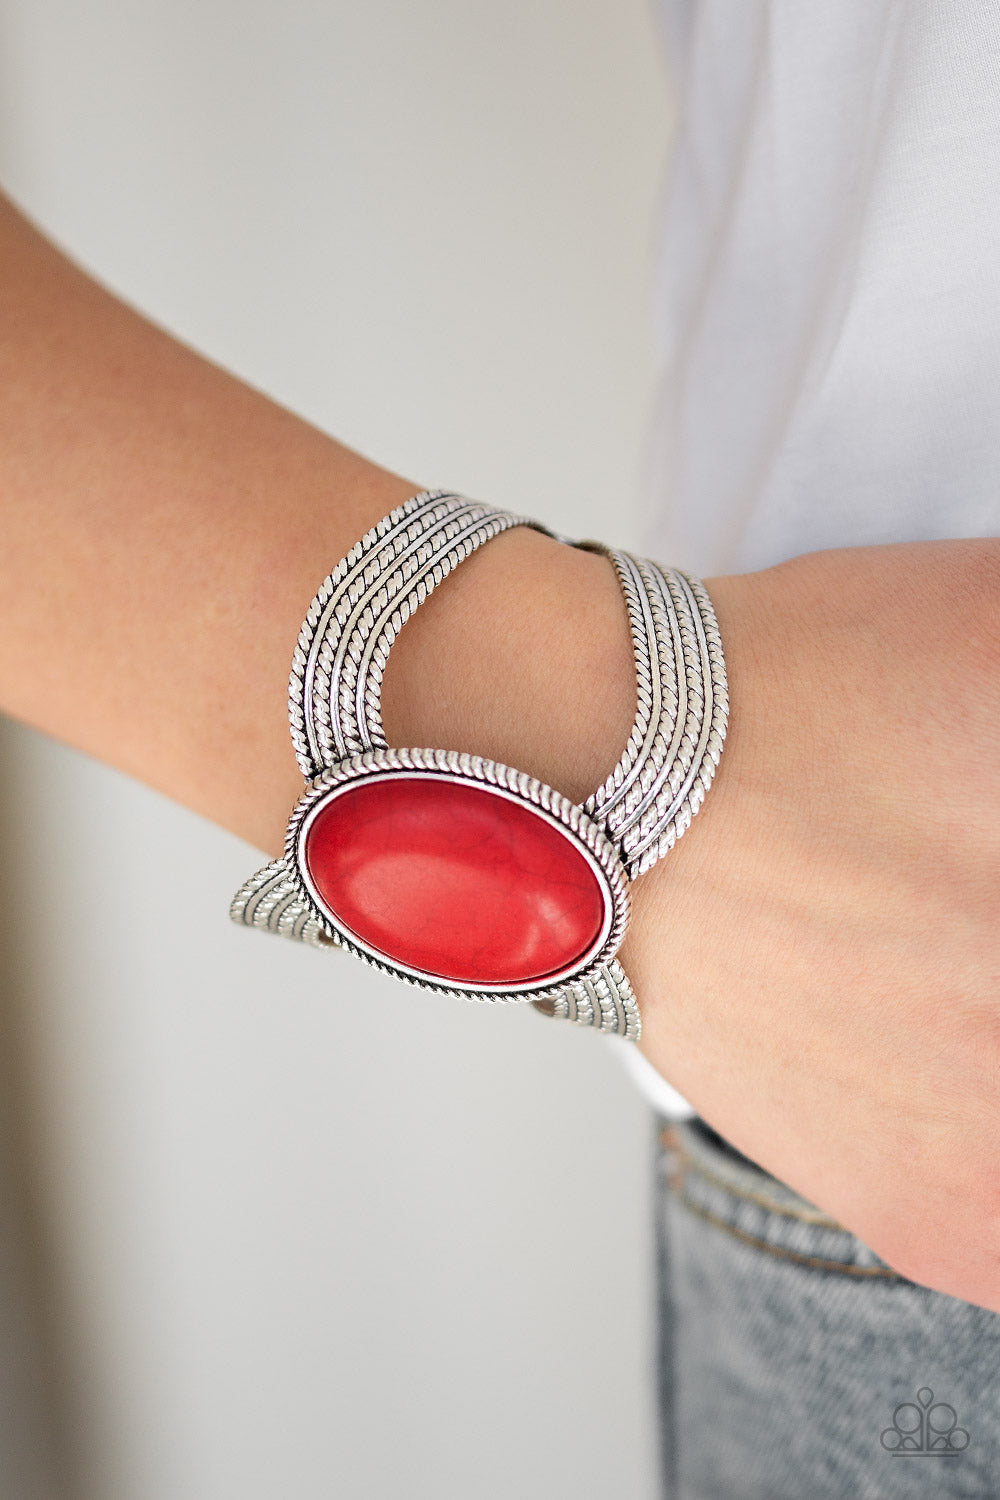 Paparazzi - Coyote Couture - Red Bracelet - Classy Jewels by Linda